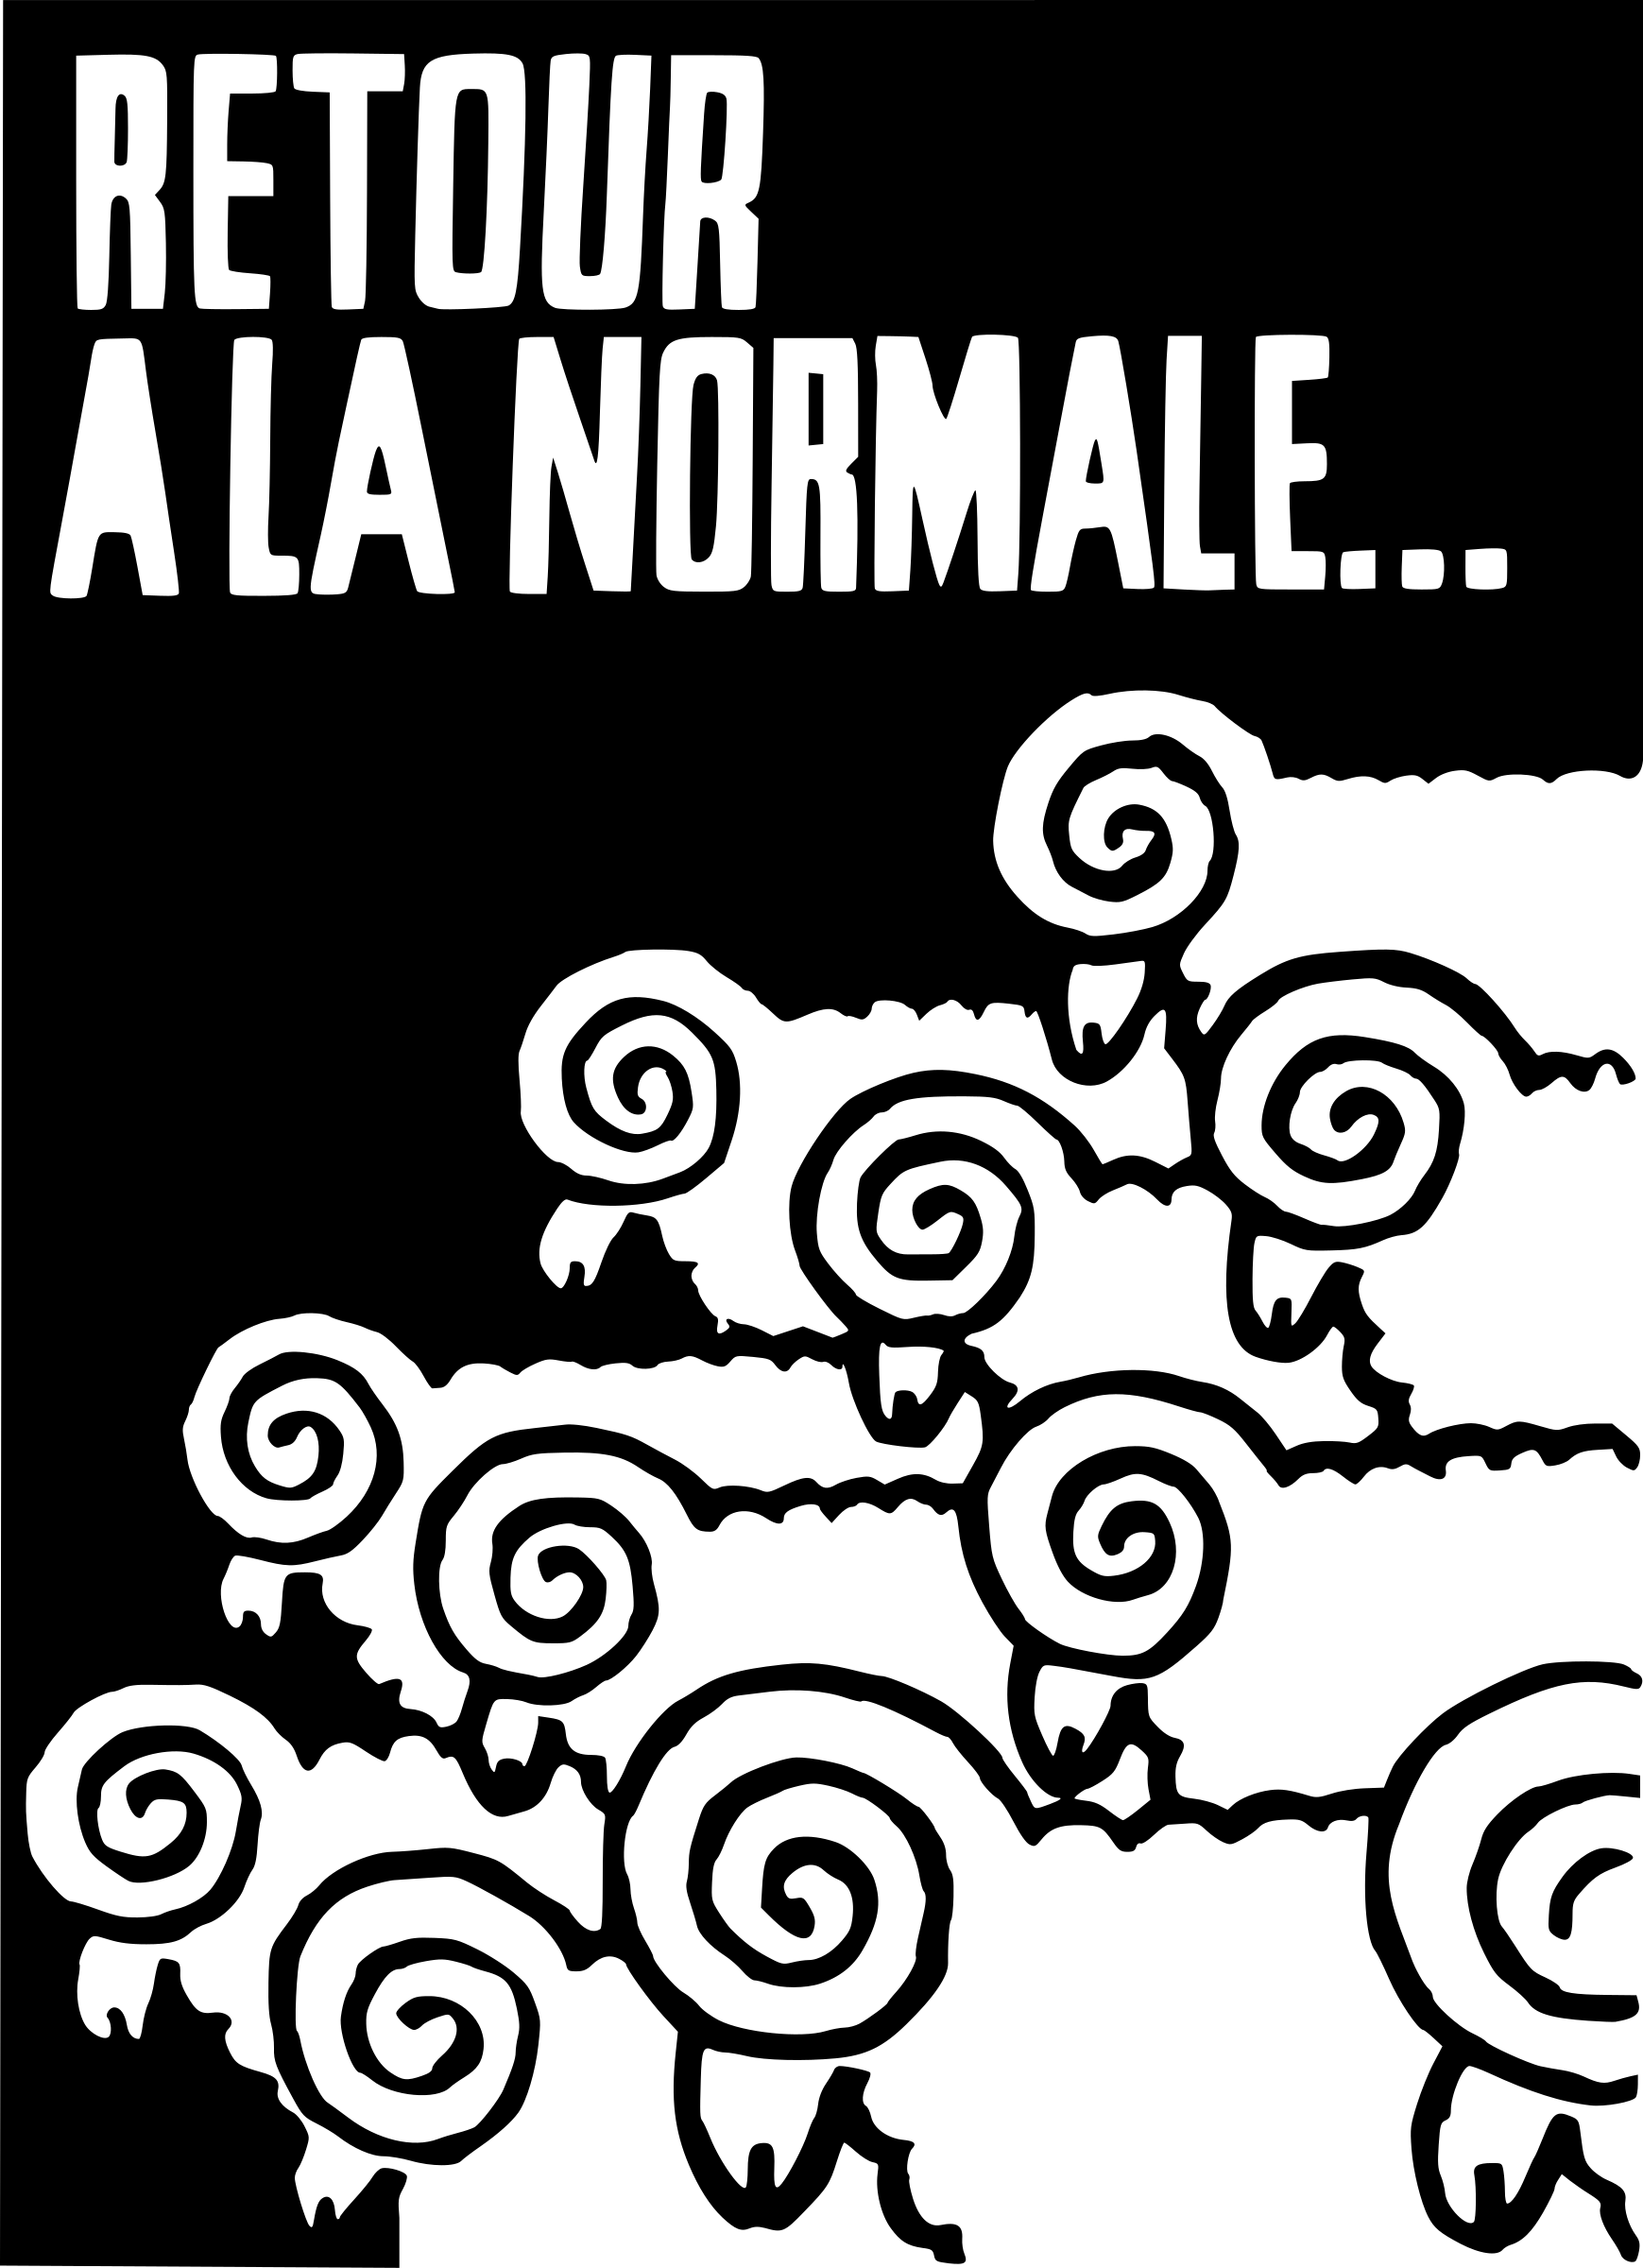 Retour à la normale (Return to Normal) by ben